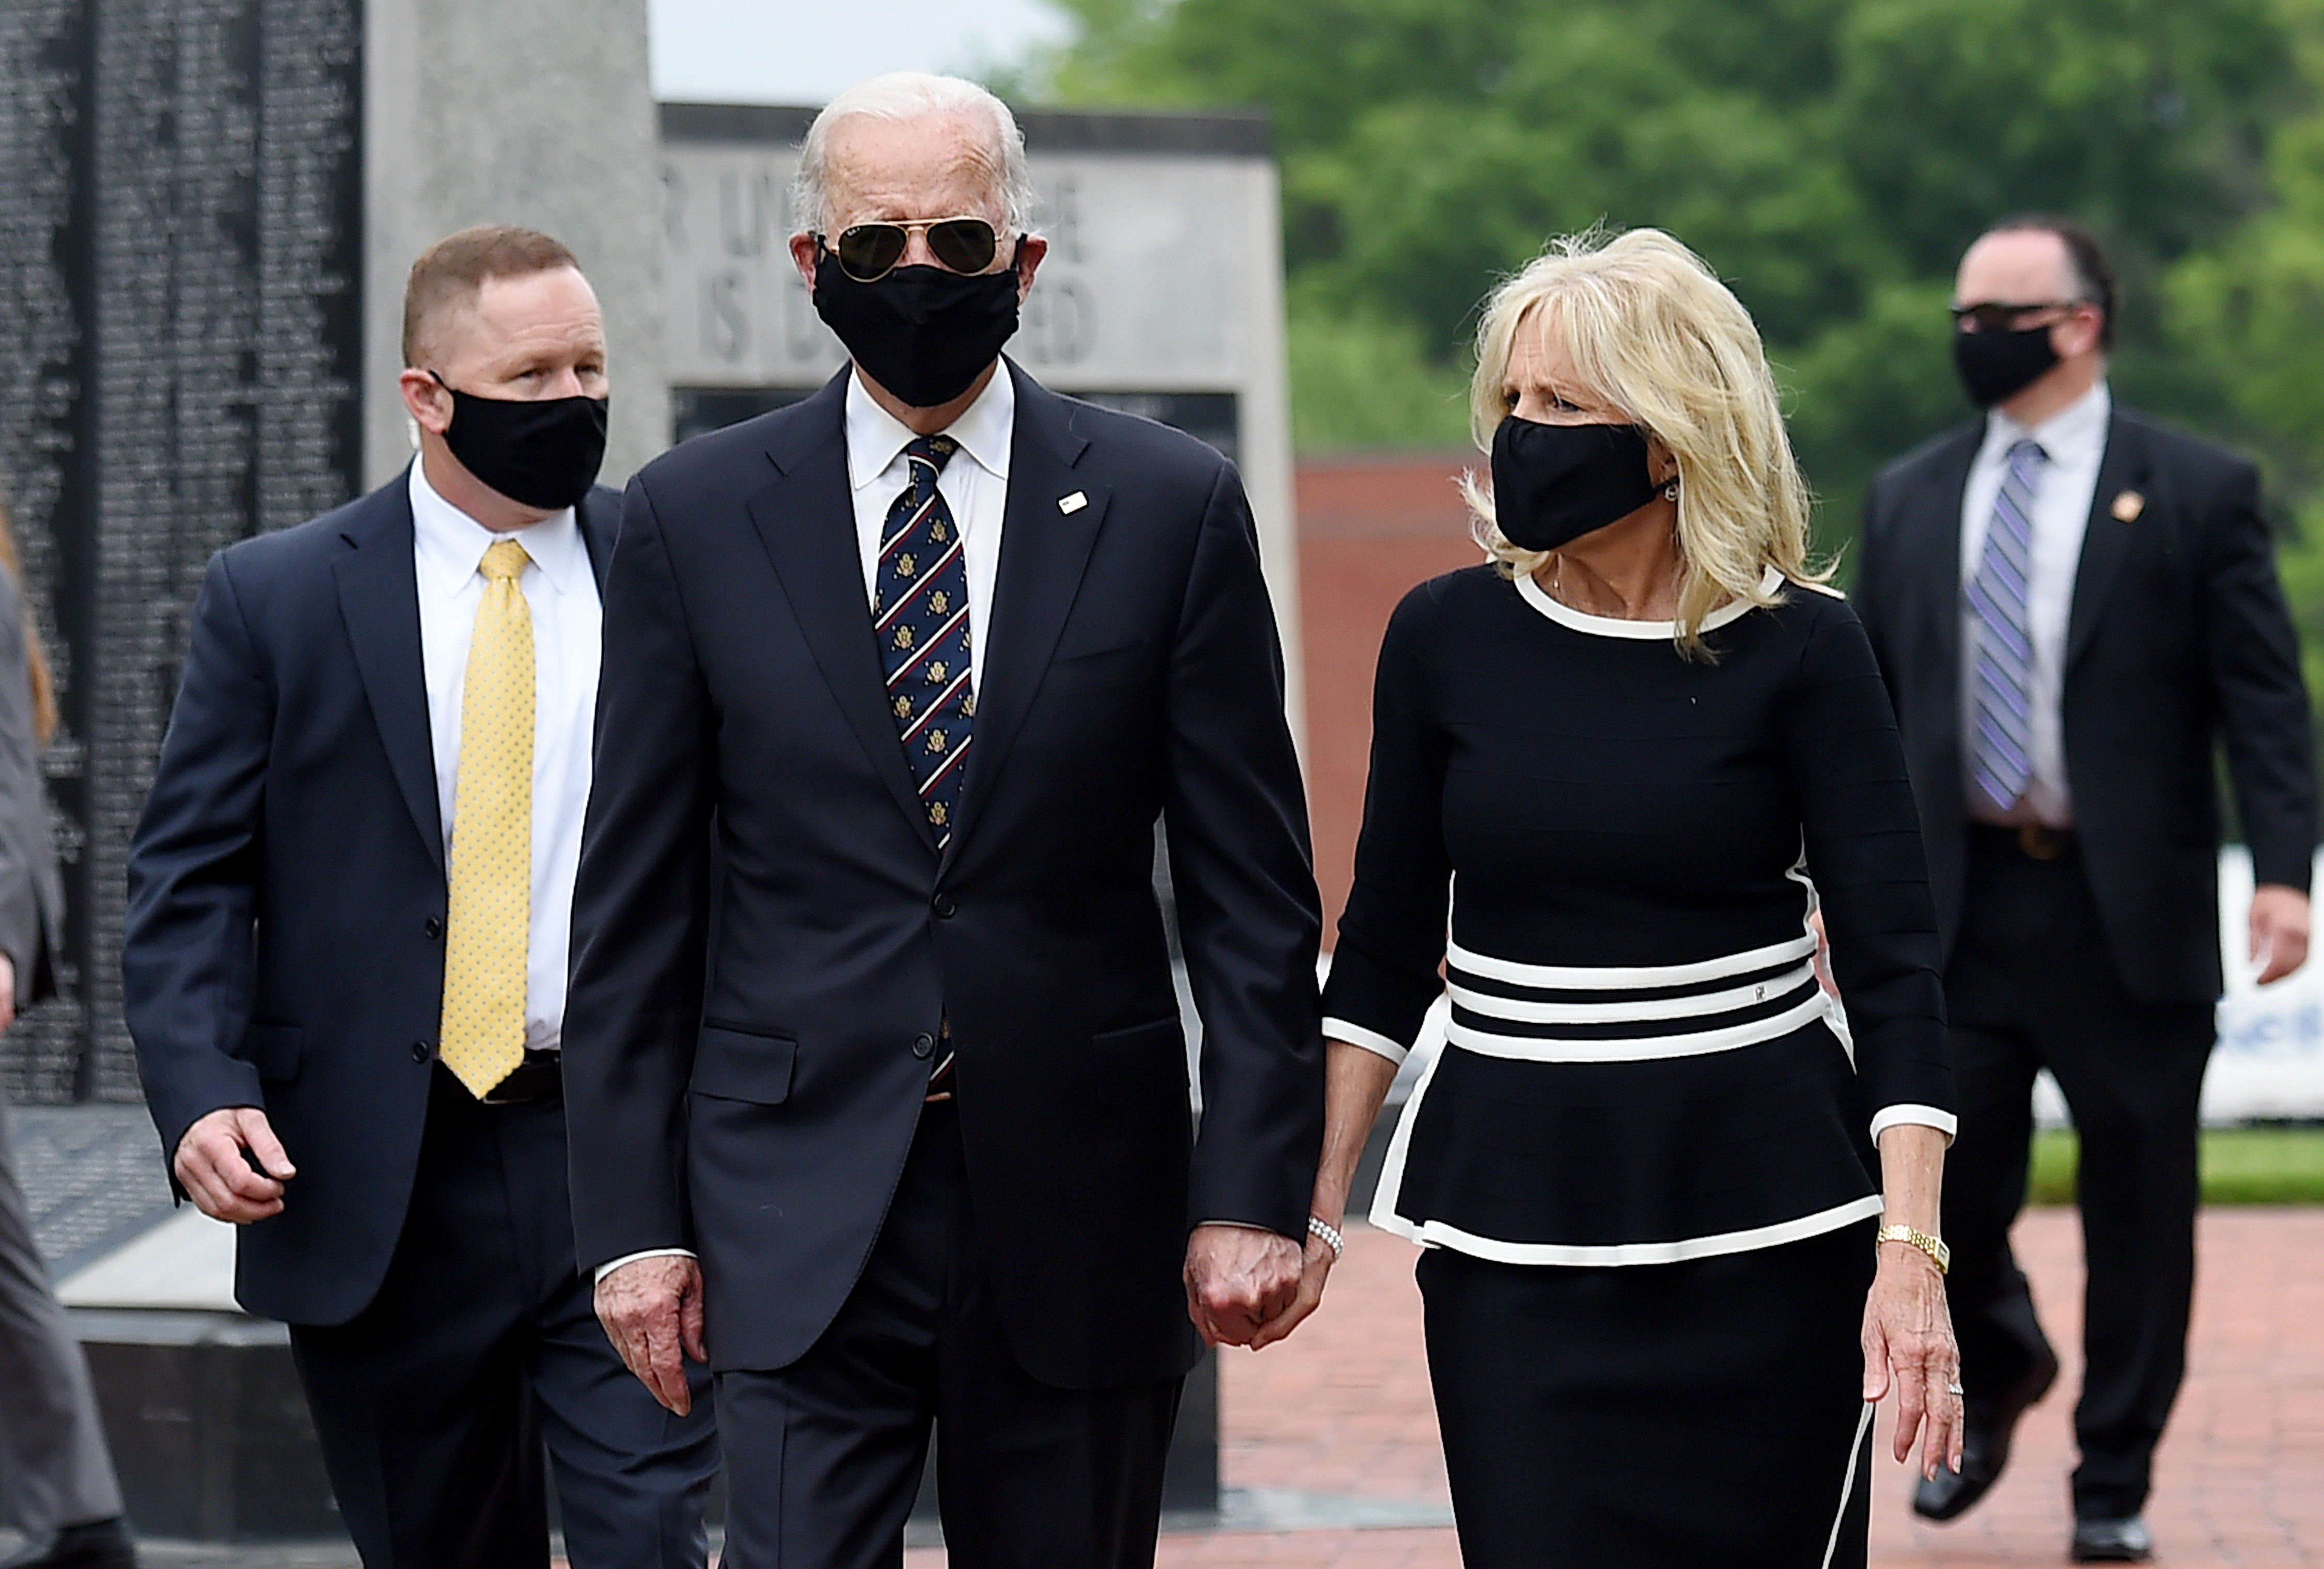 Democratic presidential candidate and former US Vice President Joe Biden and his wife Jill Biden, leave Delaware Memorial Bridge Veteran's Memorial Park after paying their respects to fallen service members in Newcastle, Delaware, May 25, 2020. (Photo by Olivier DOULIERY / AFP) (Photo by OLIVIER DOULIERY/AFP via Getty Images)